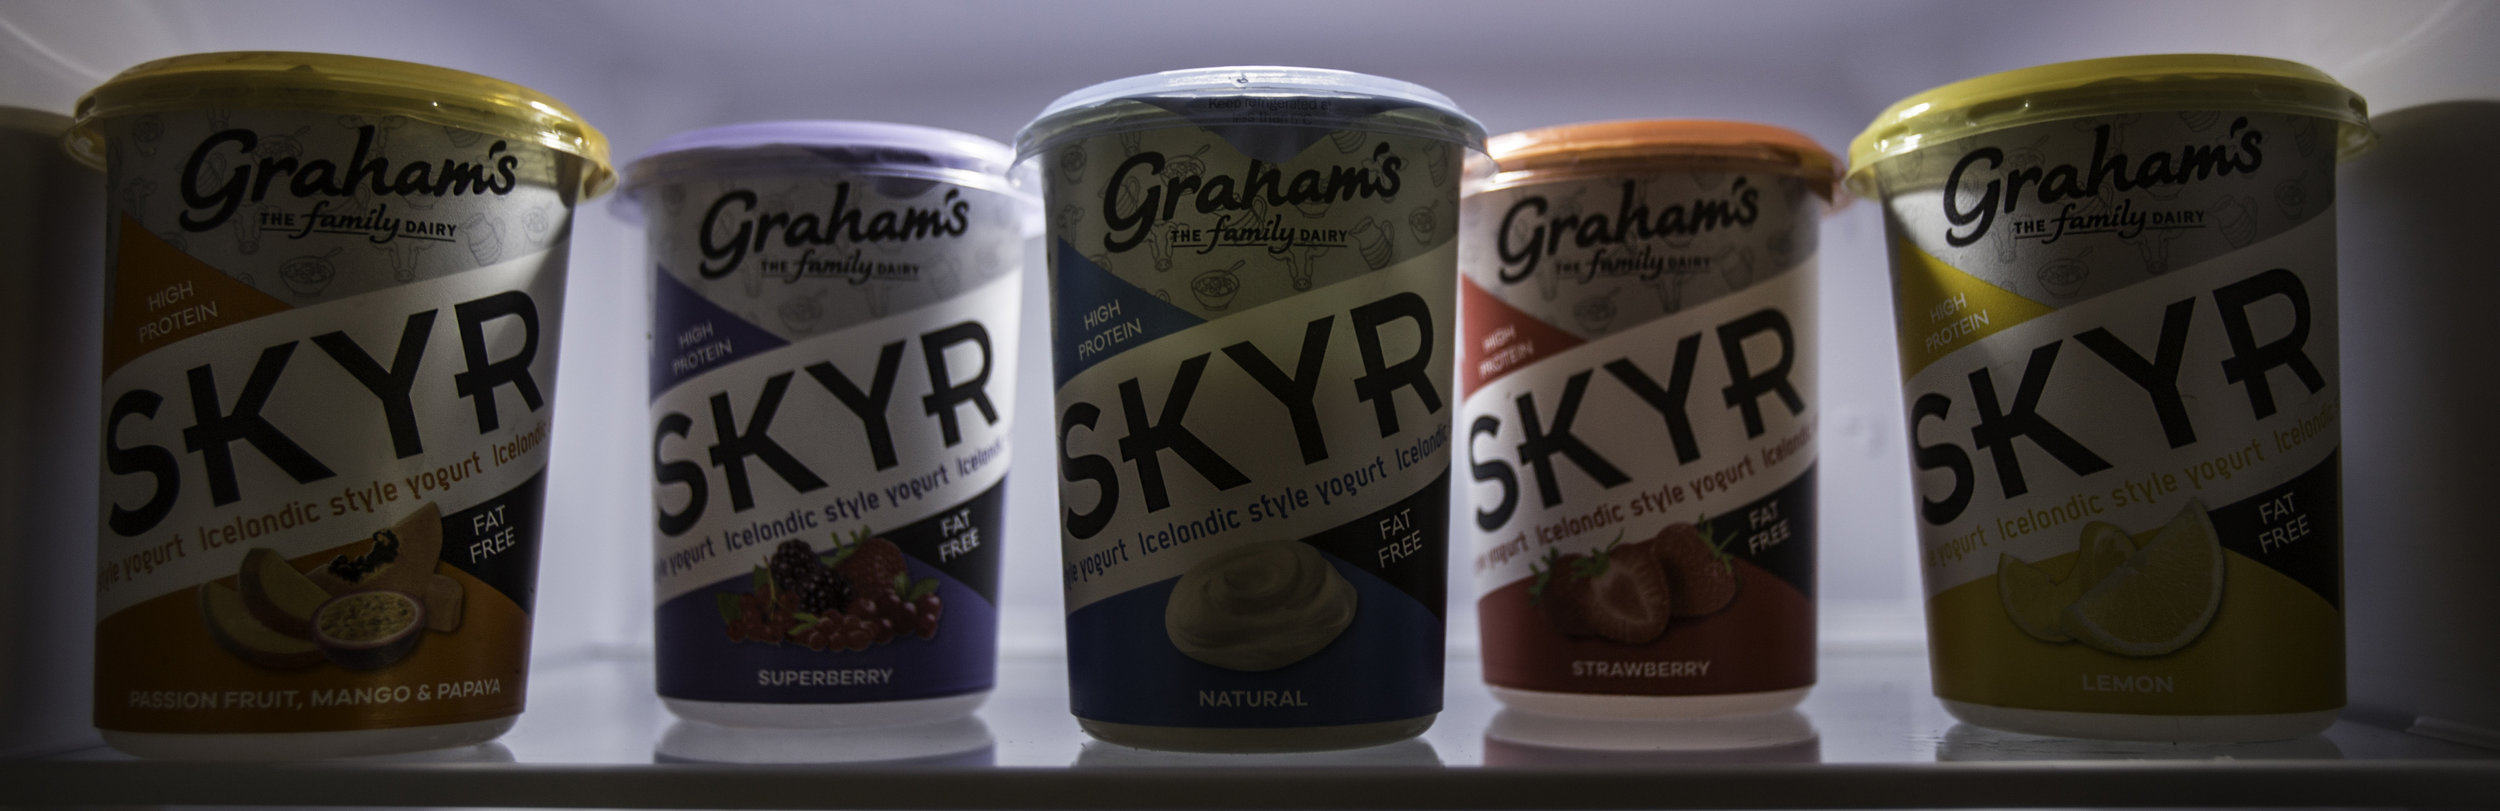 skyr yoghurt fridge shot.jpg